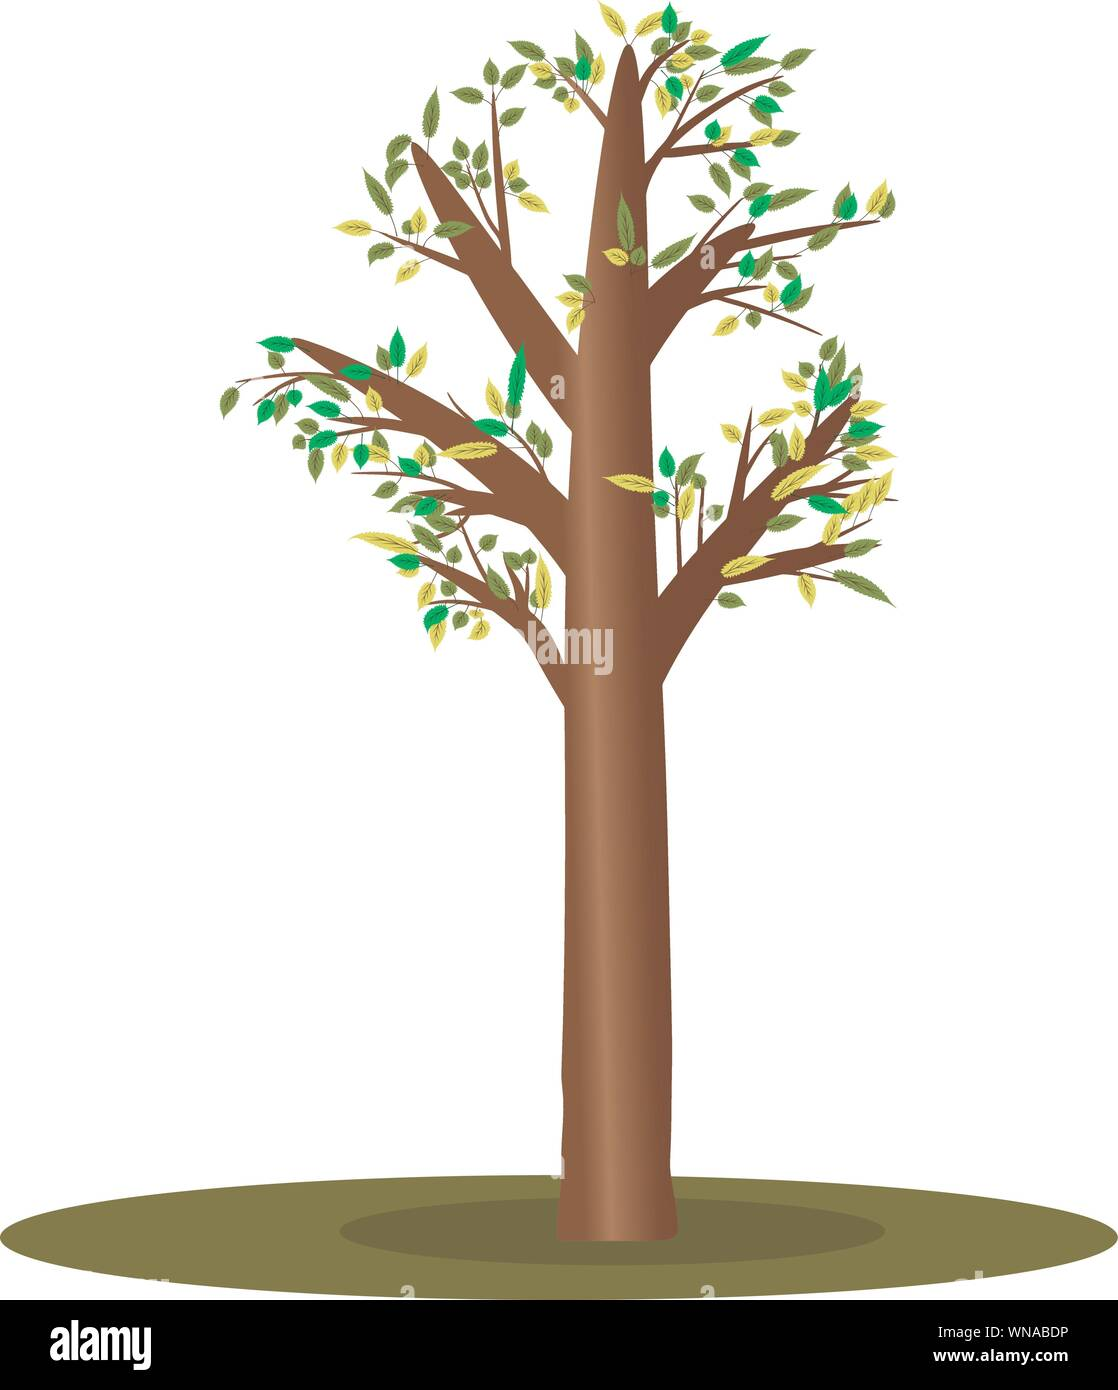 Isolated Cartoon Tree With Small Leaves Vector Illustration For Cartoon Props And Decoration For Anomations Stock Vector Image Art Alamy Cartoon tree cartoon tree drawing cartoon treehouse cartoon tree roots cartoon tree frog green cartoon tree cartoon tree with no leaves. https www alamy com isolated cartoon tree with small leaves vector illustration for cartoon props and decoration for anomations image271291826 html